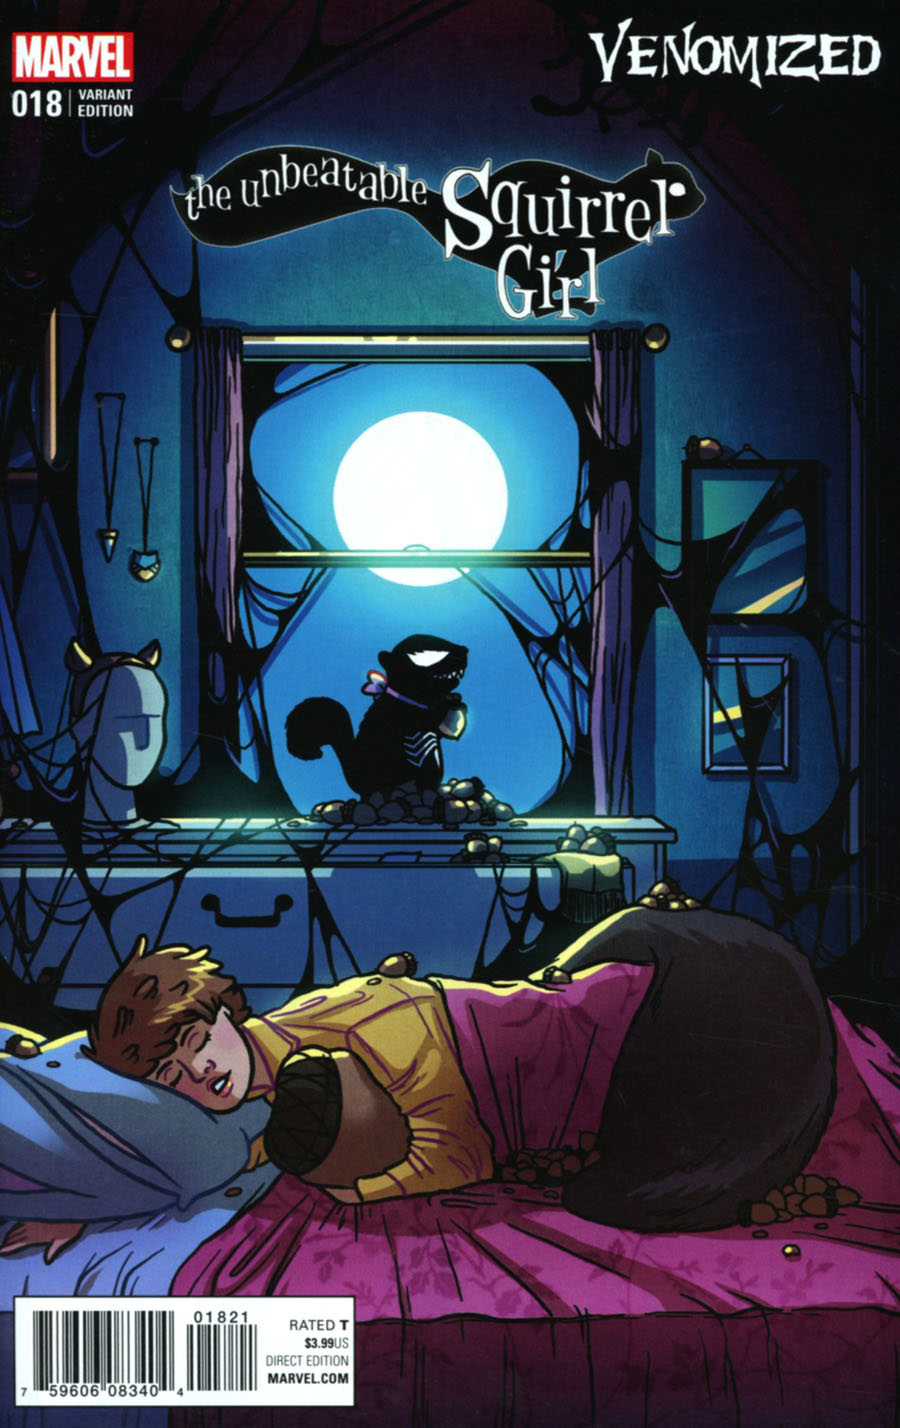 Unbeatable Squirrel Girl Vol 2 #18 Cover B Variant Kate Leth Venomized Cover